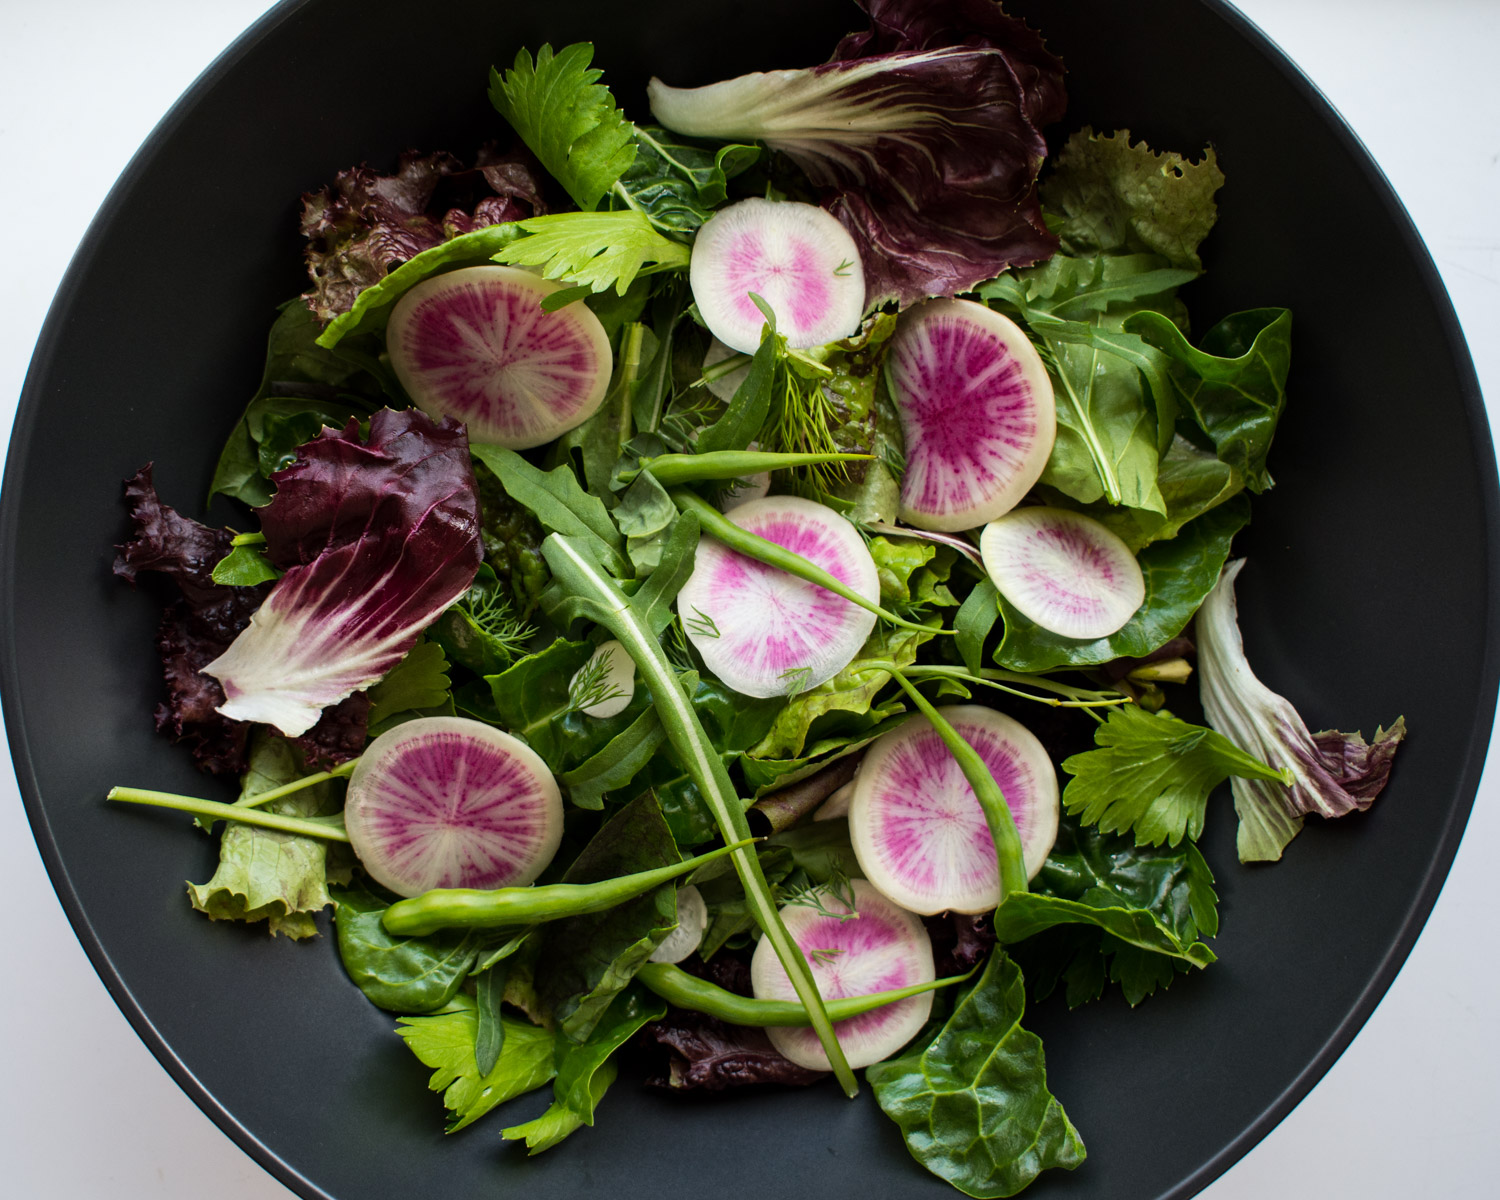 Fresh garden greens with 3 types of radish.